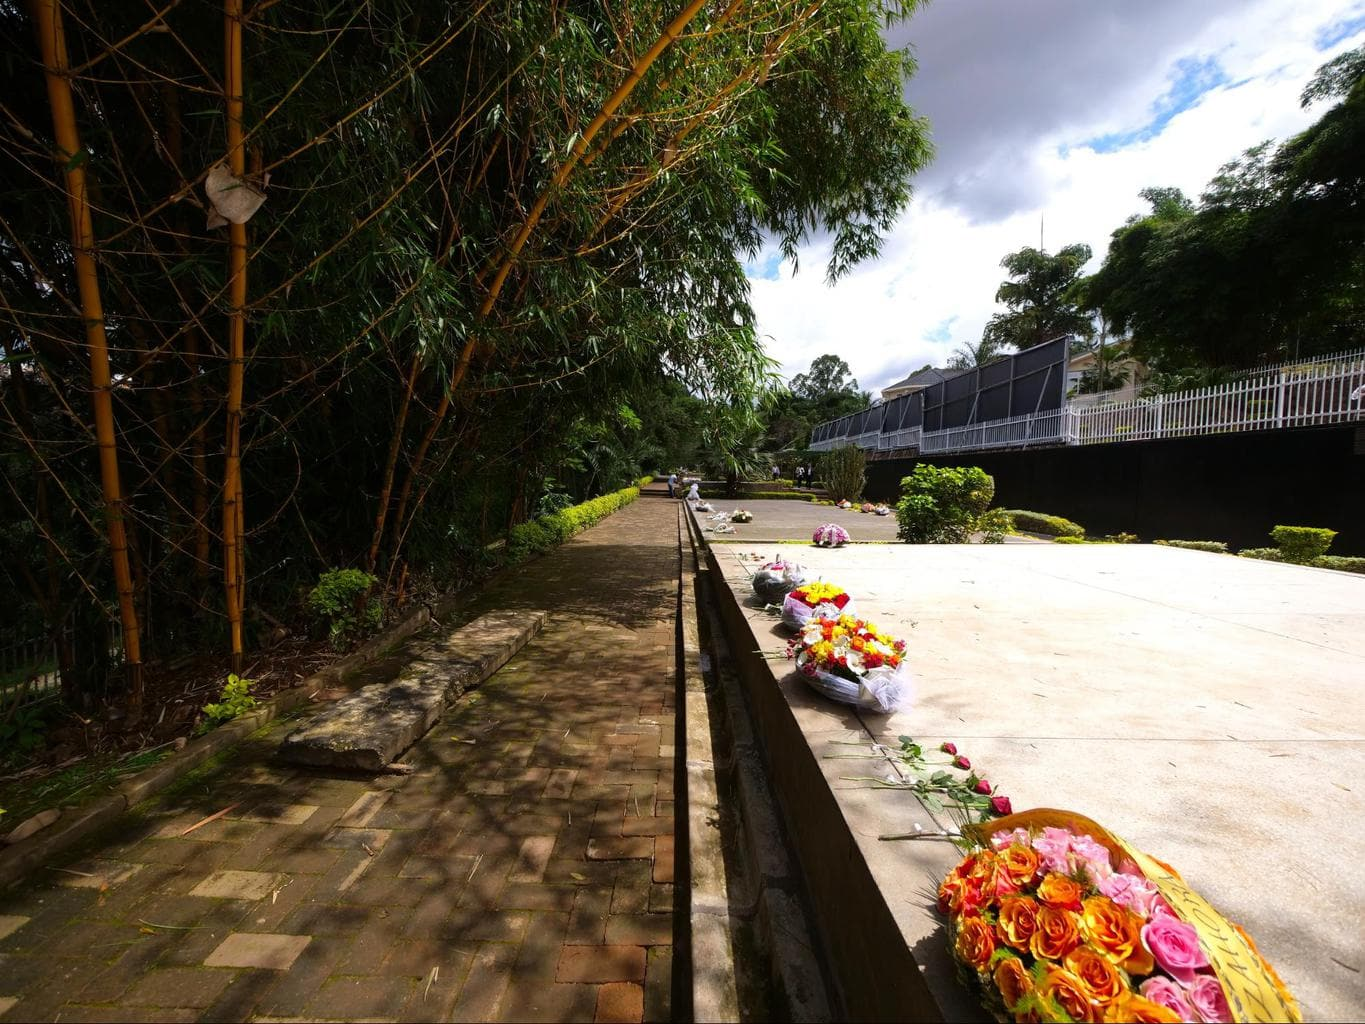 The gardens and Genocide Memorial